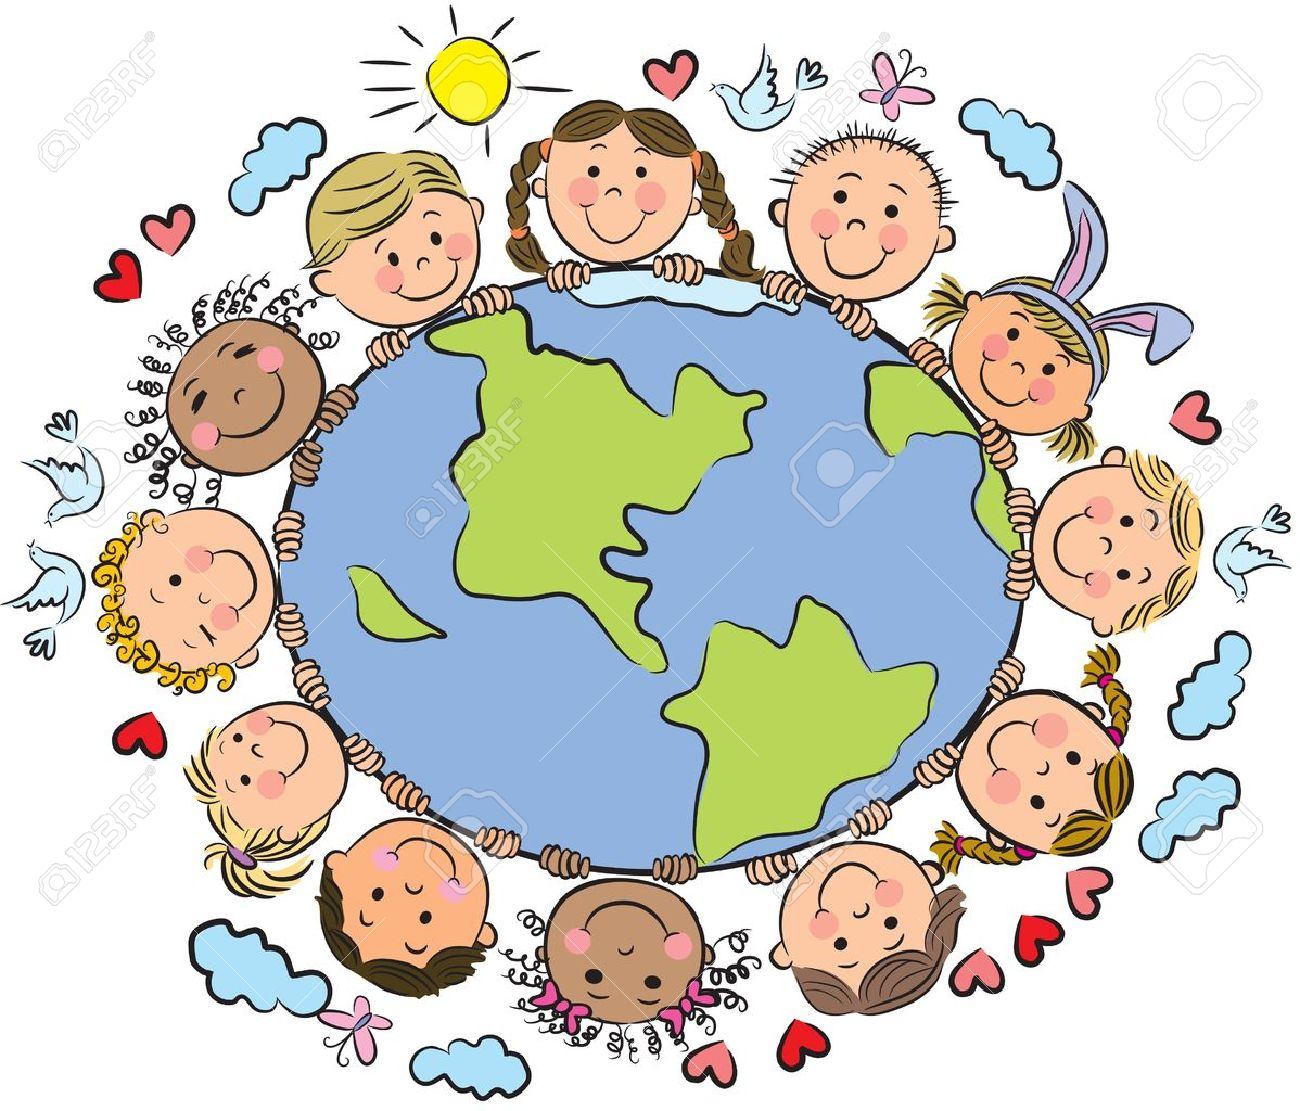 Kids of the Earth. Contains transparent objects. Stock Vector - 17613858